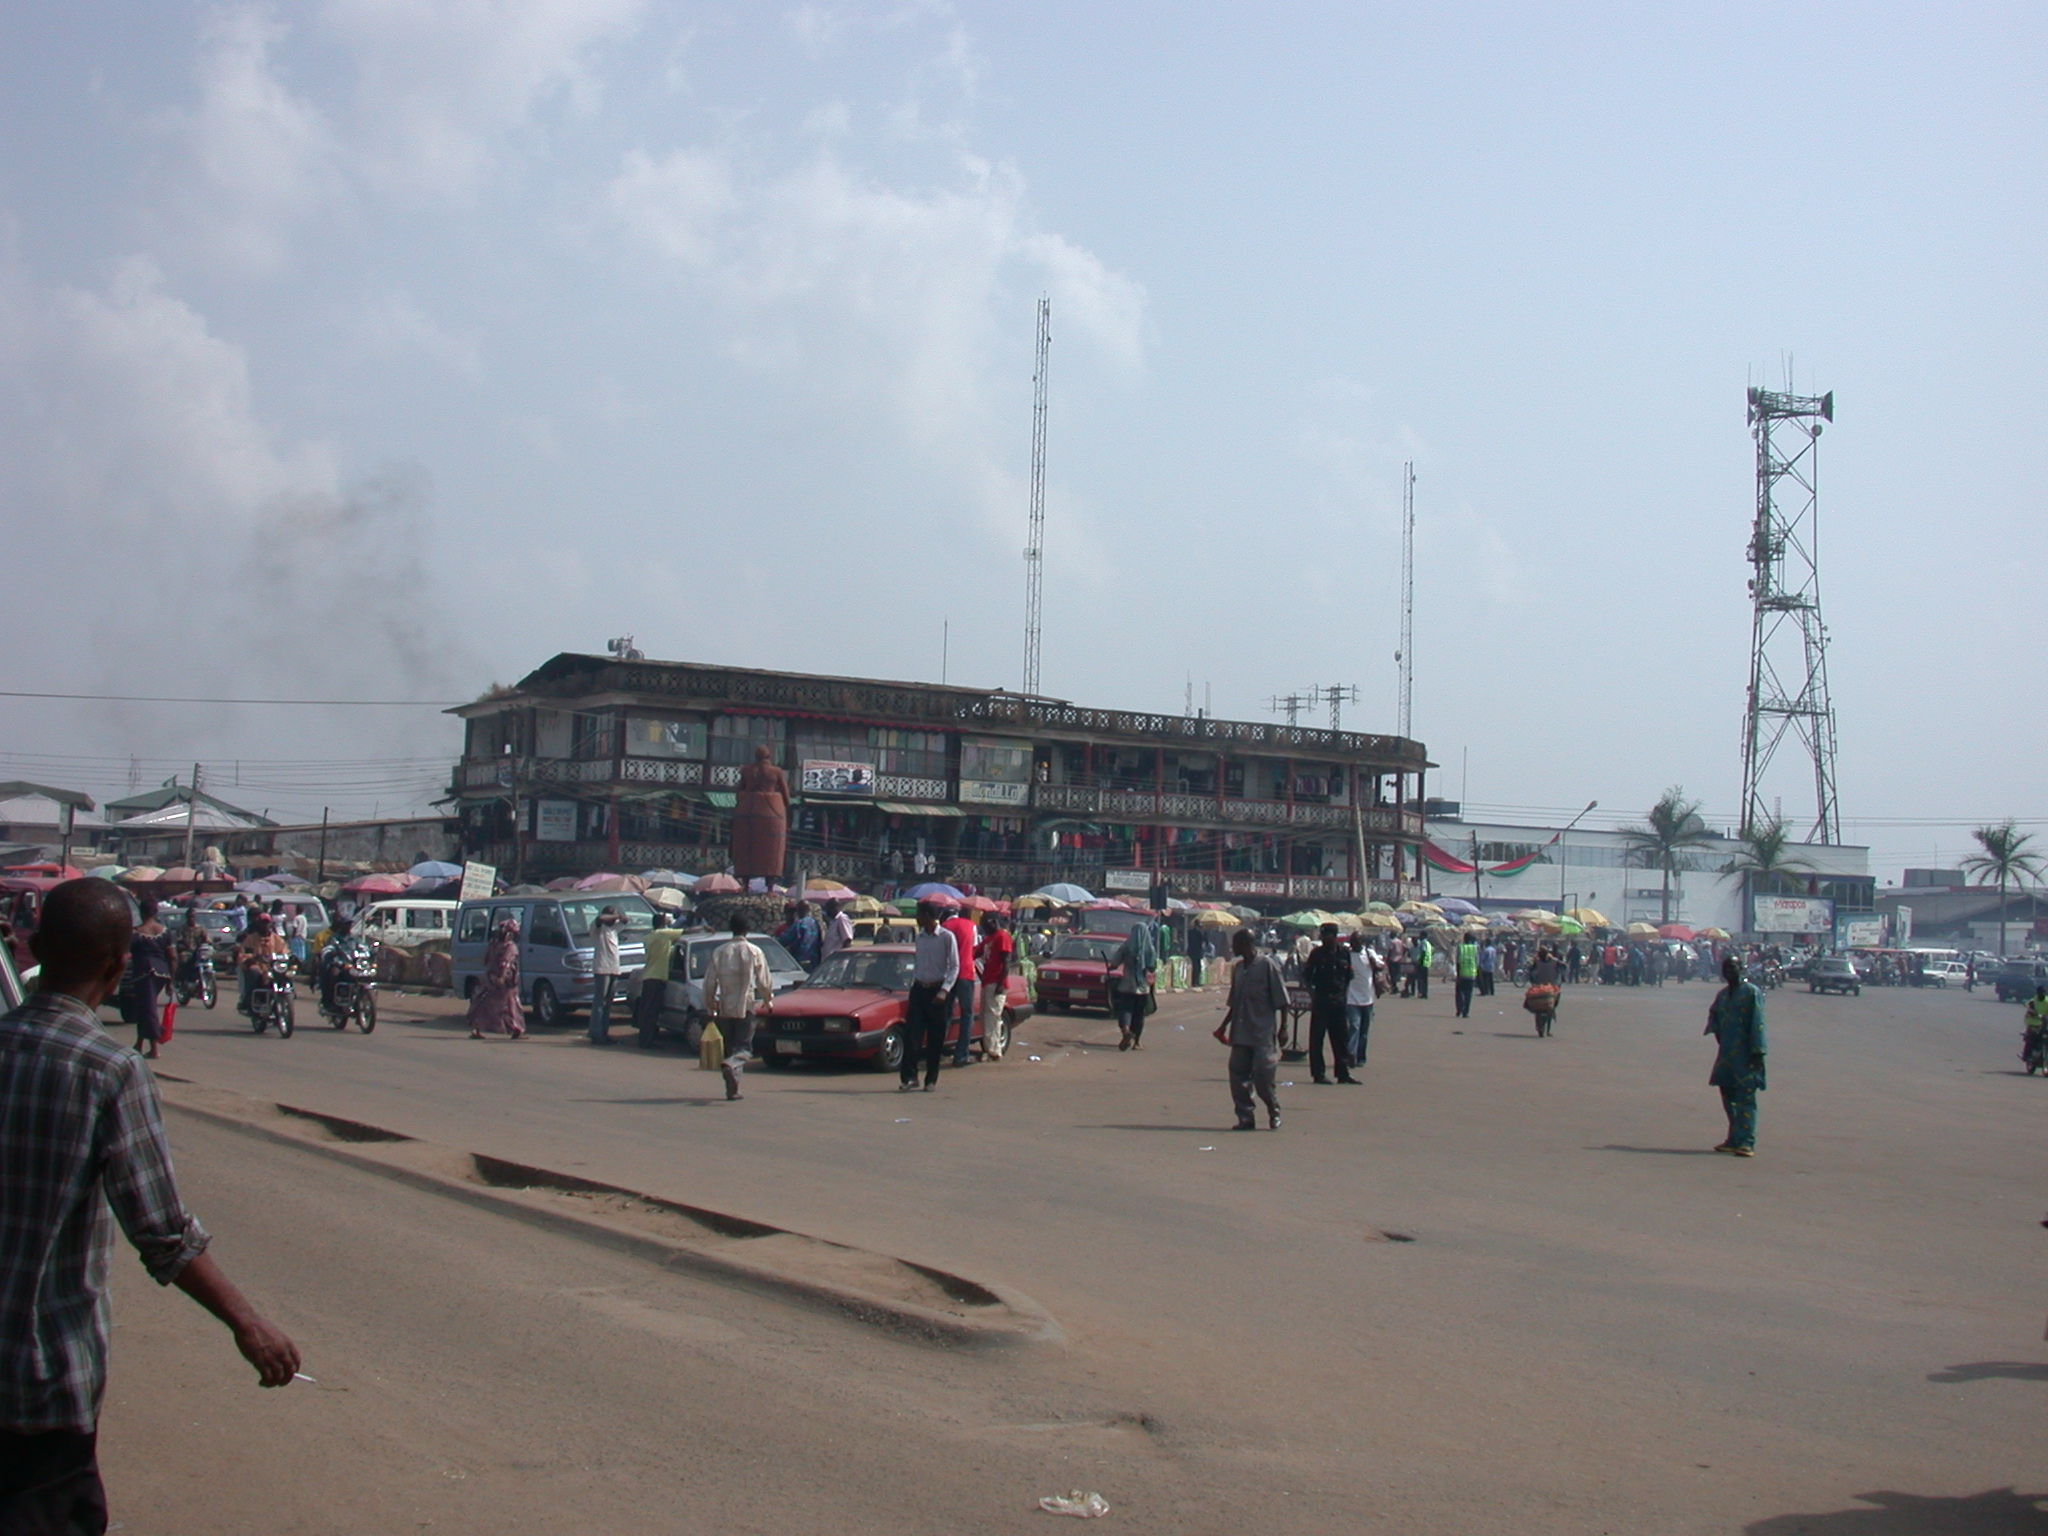 Shops and Statue on Ring Road, Kings Square, Benin City, Nigeria